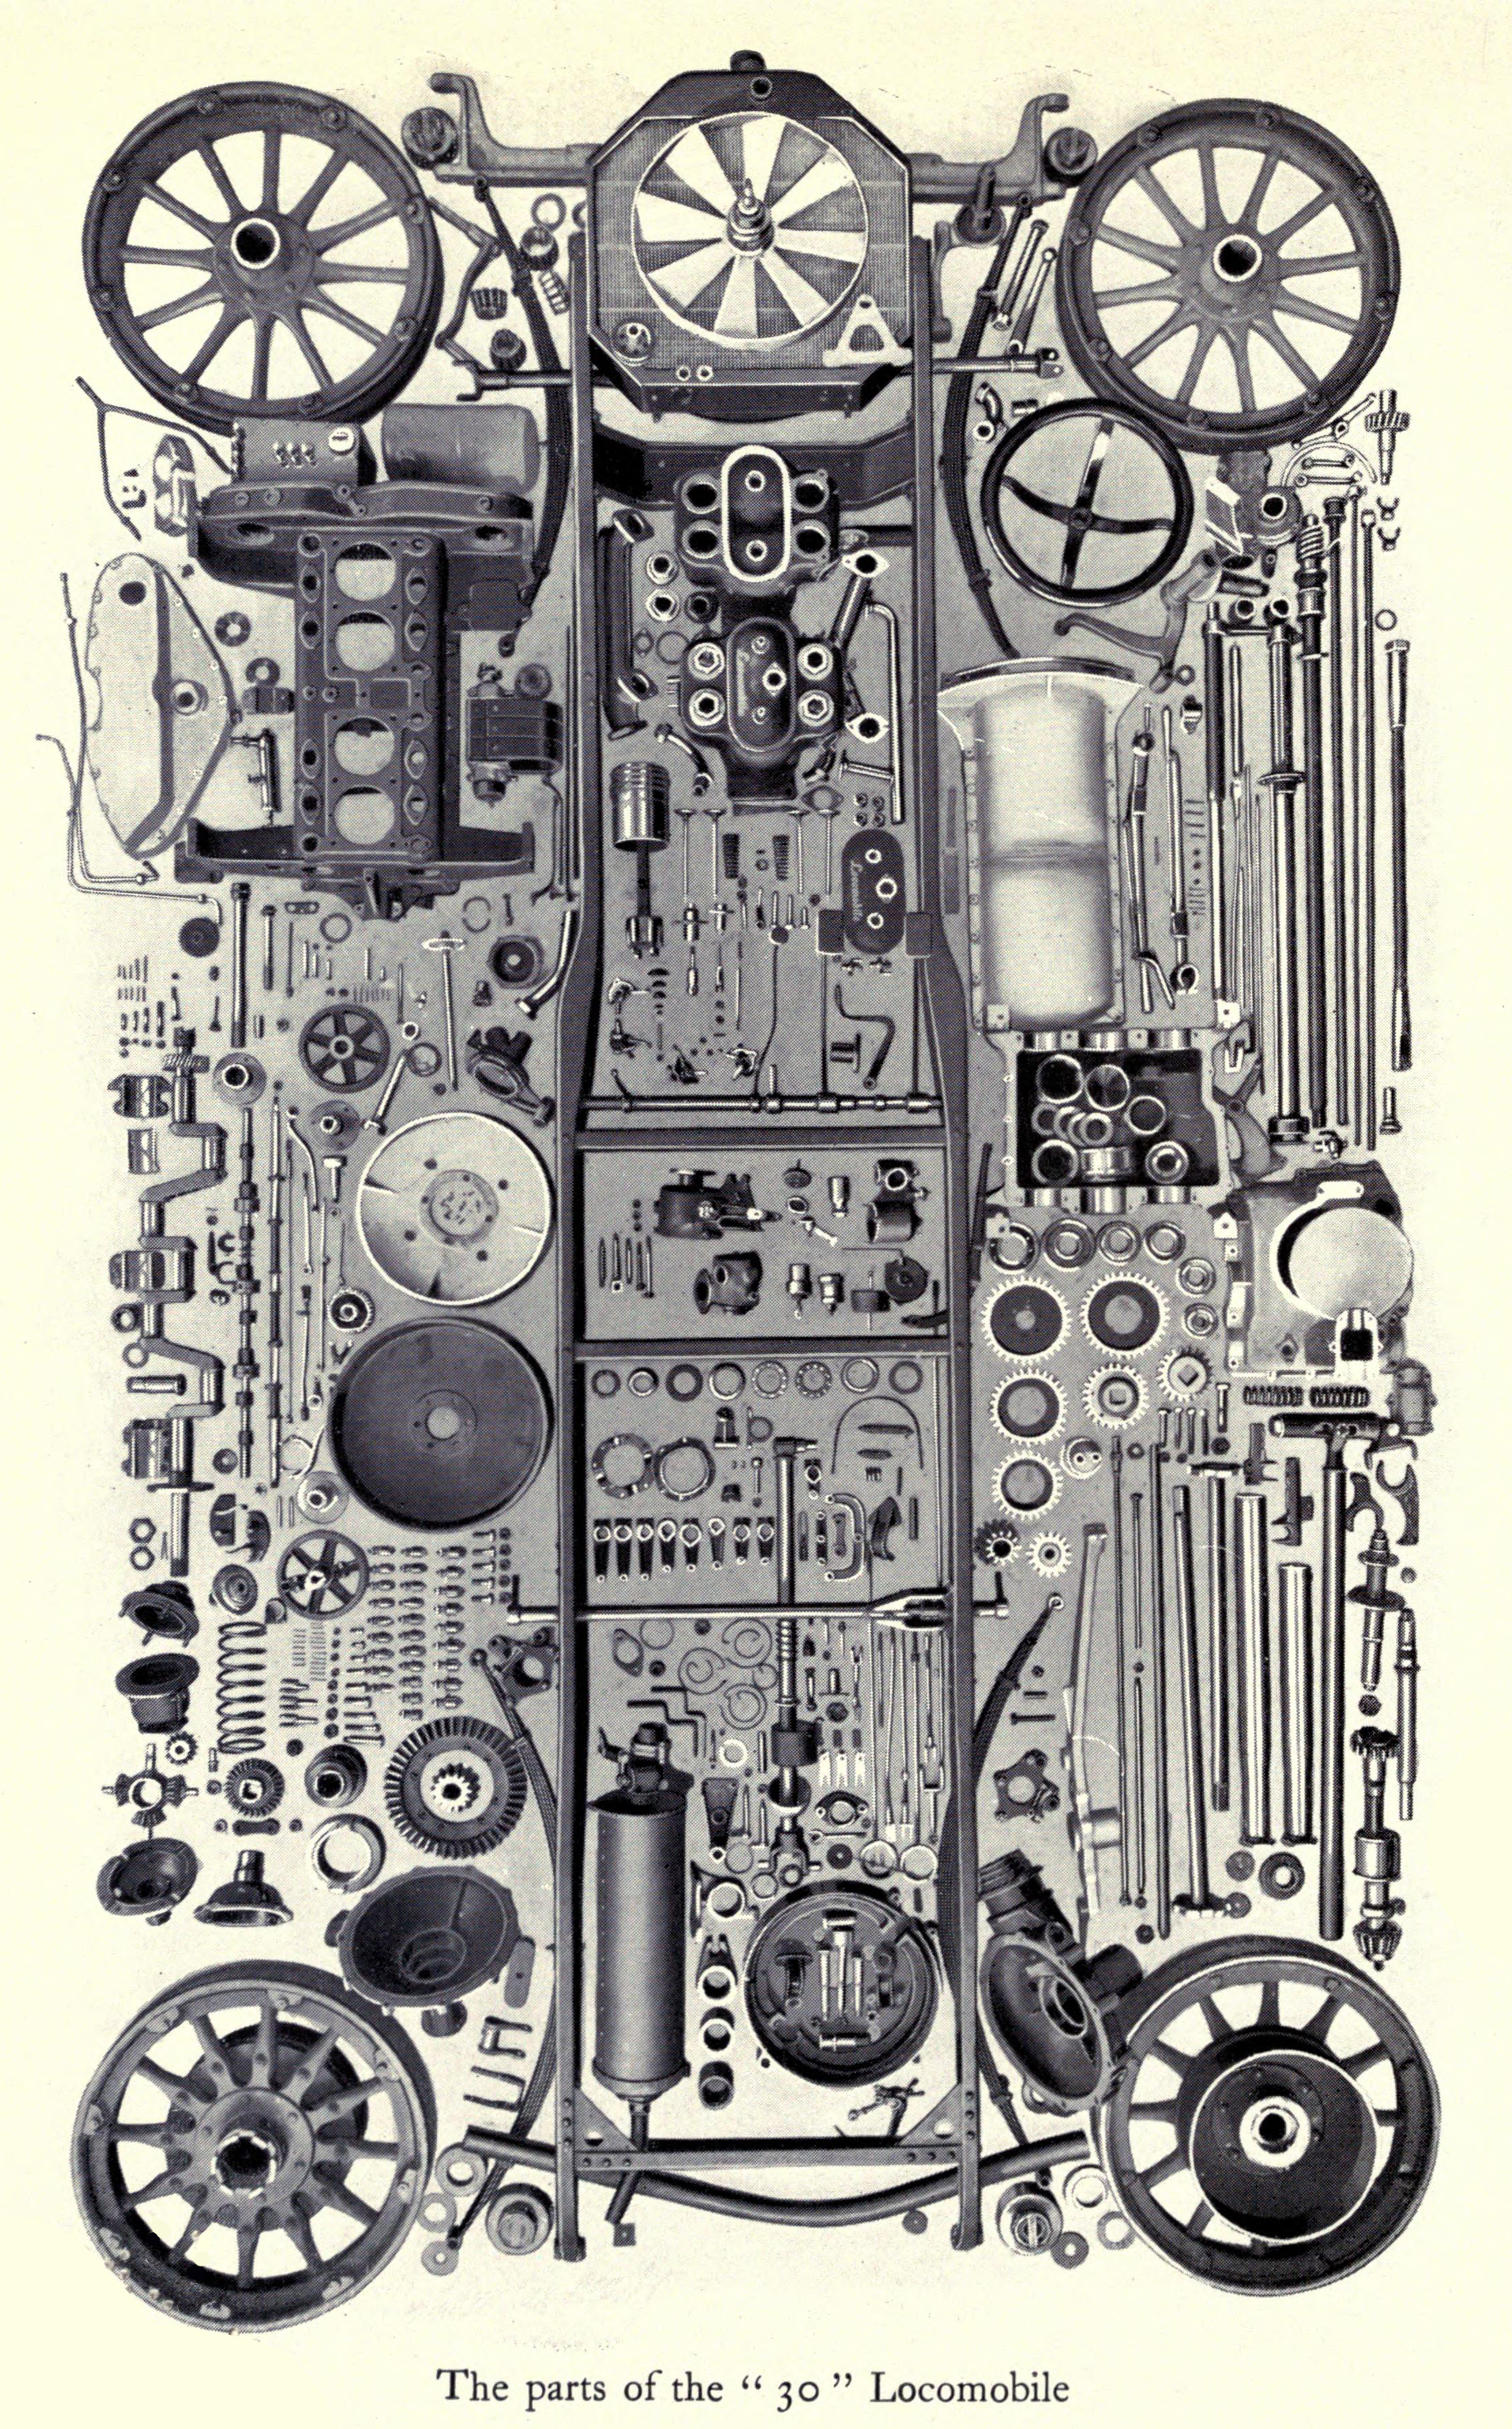 Antique Locomobile 30 Car Parts Illustration circa 1911 -